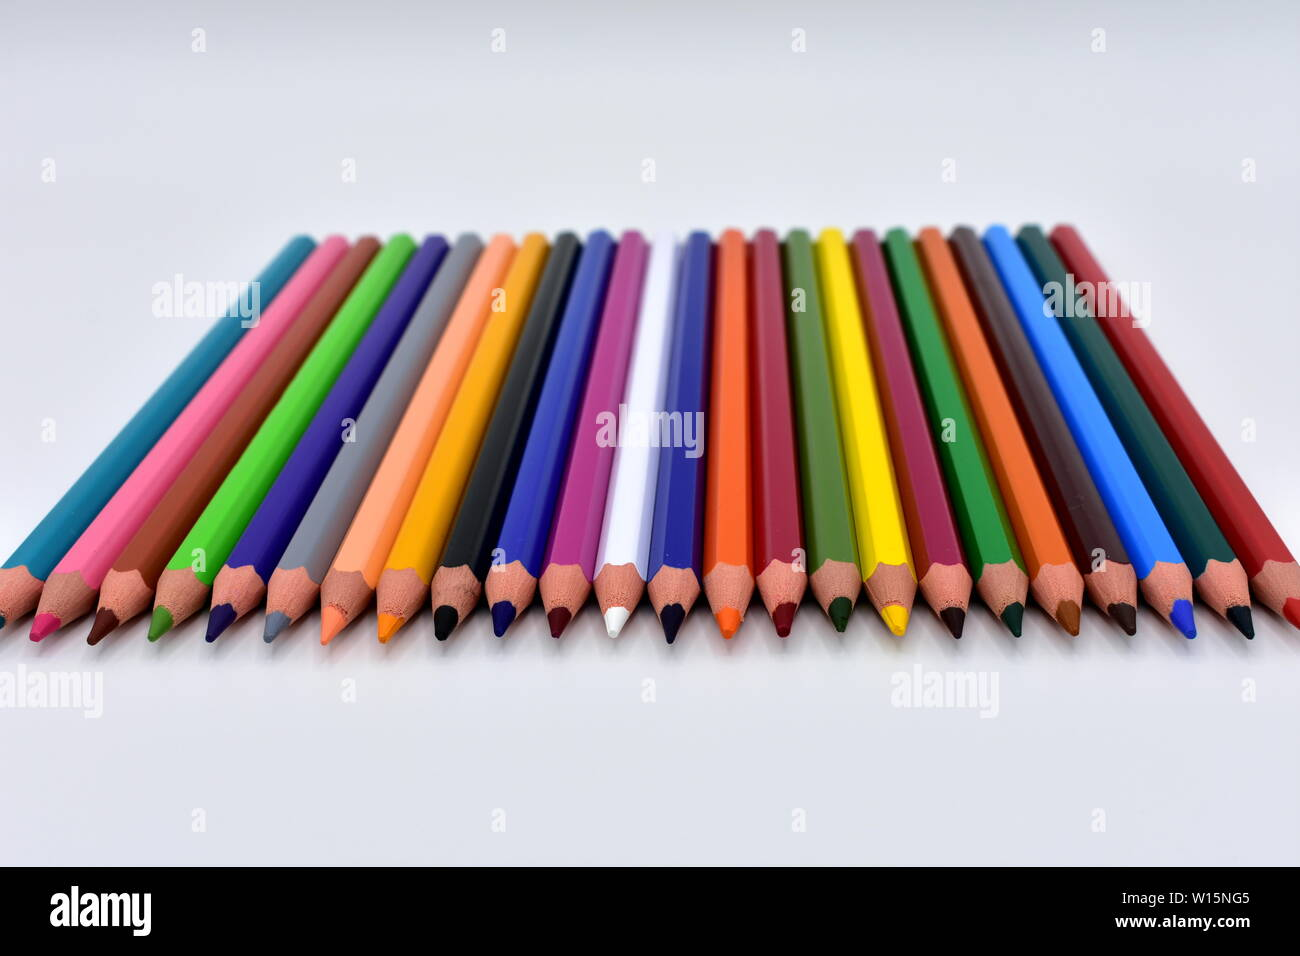 Wooden pencils with colours on a white background. - Stock Image